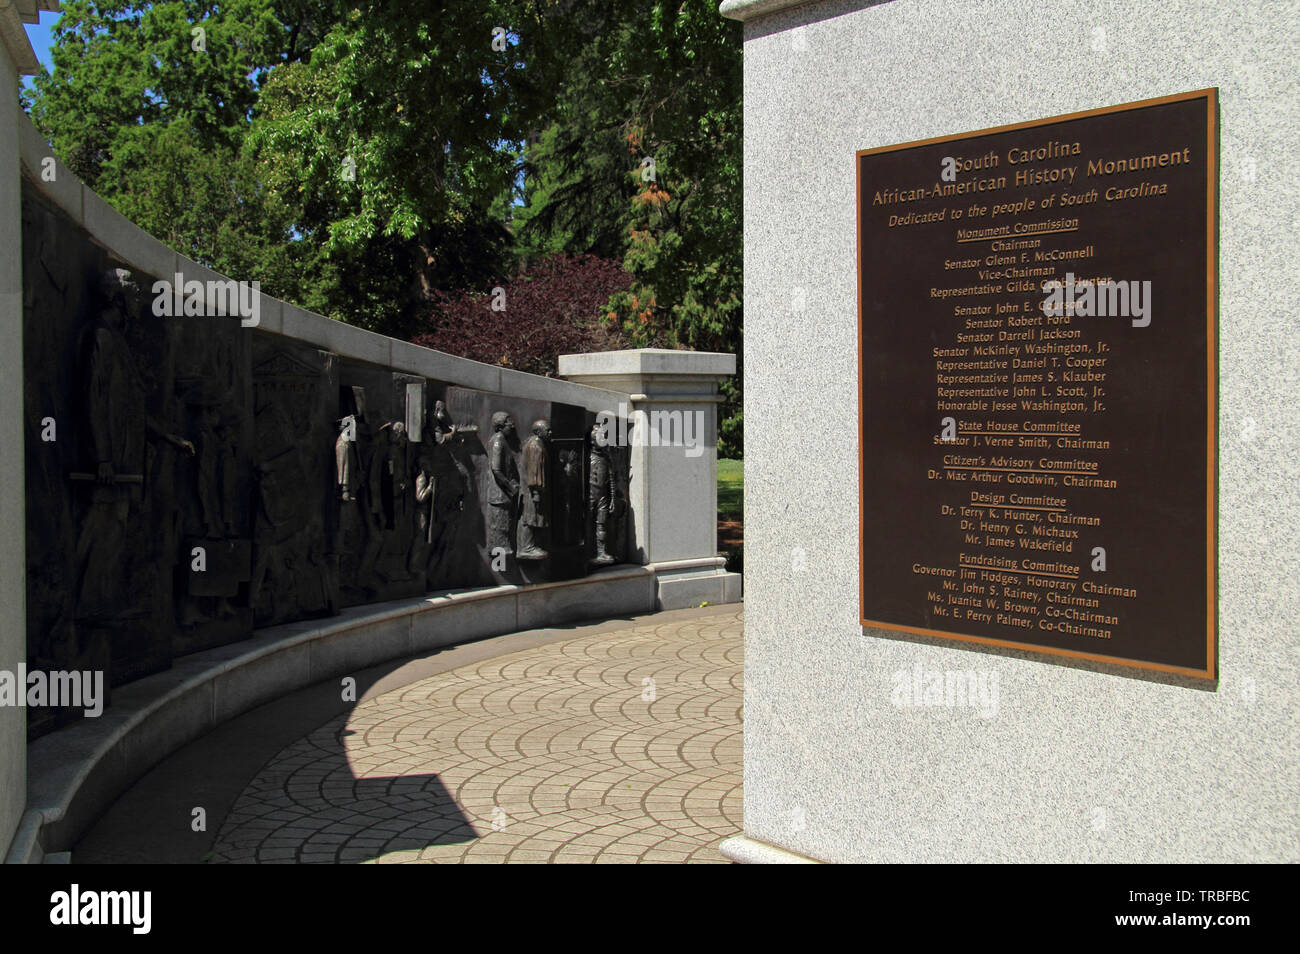 One of the numerous memorials found on the grounds of the South Carolina statehouse is dedicated to African Americans Stock Photo